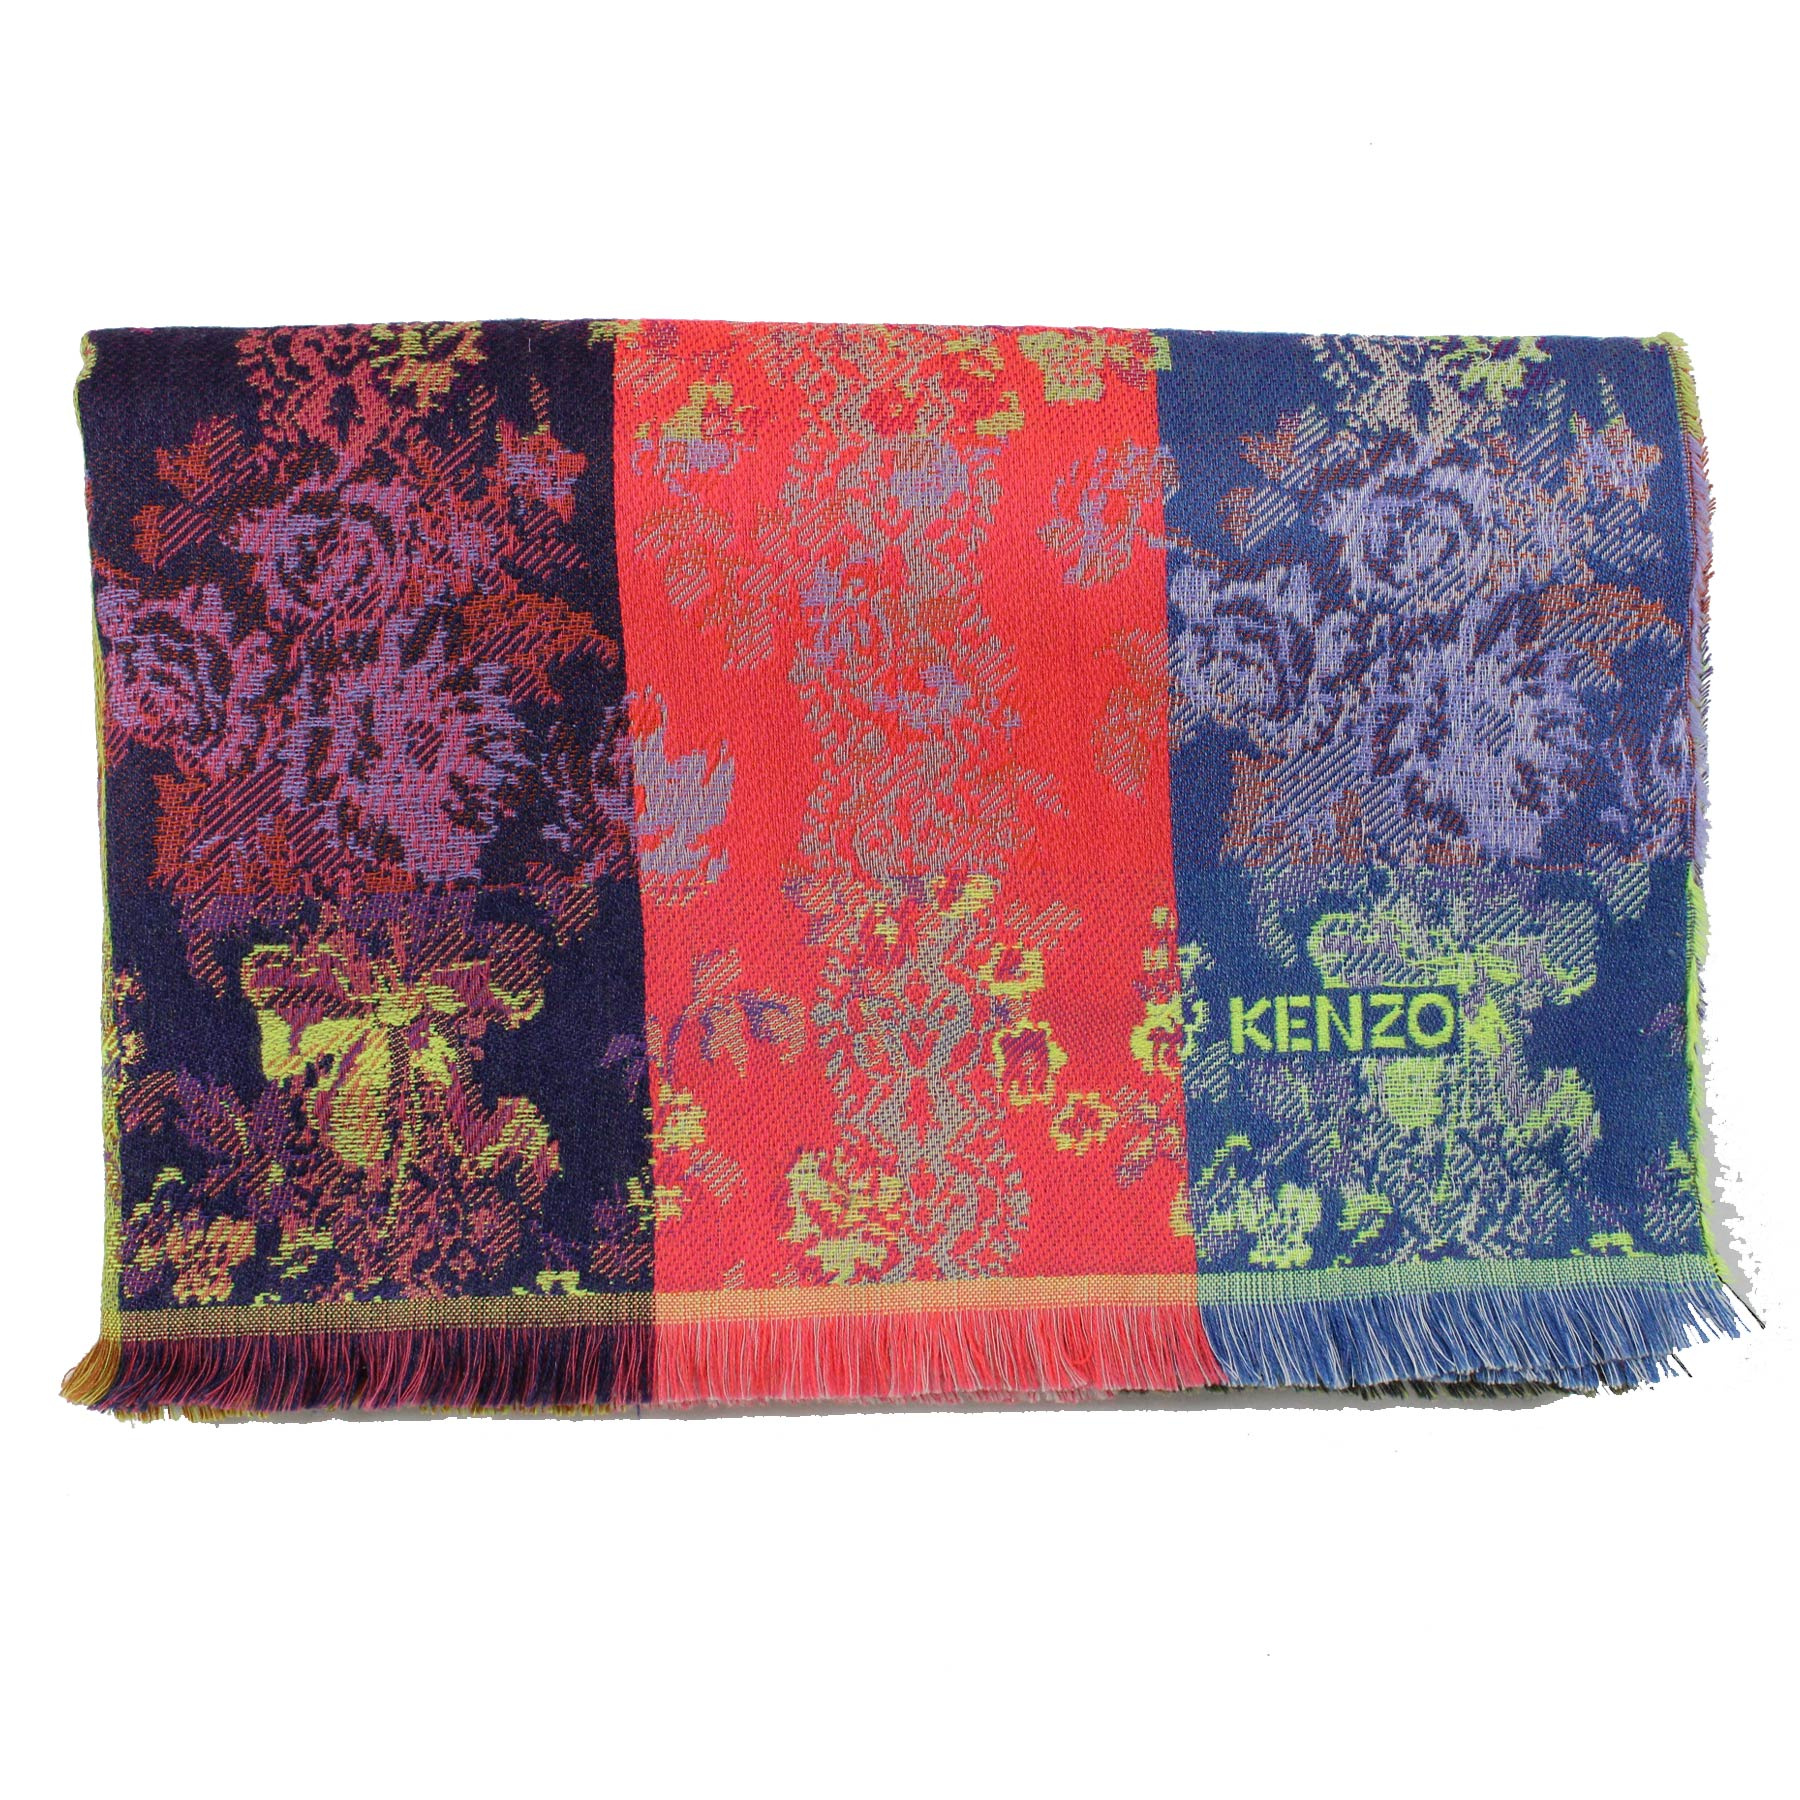 Kenzo Woman Scarf Purple Pink Olive Wool Blend Shawl